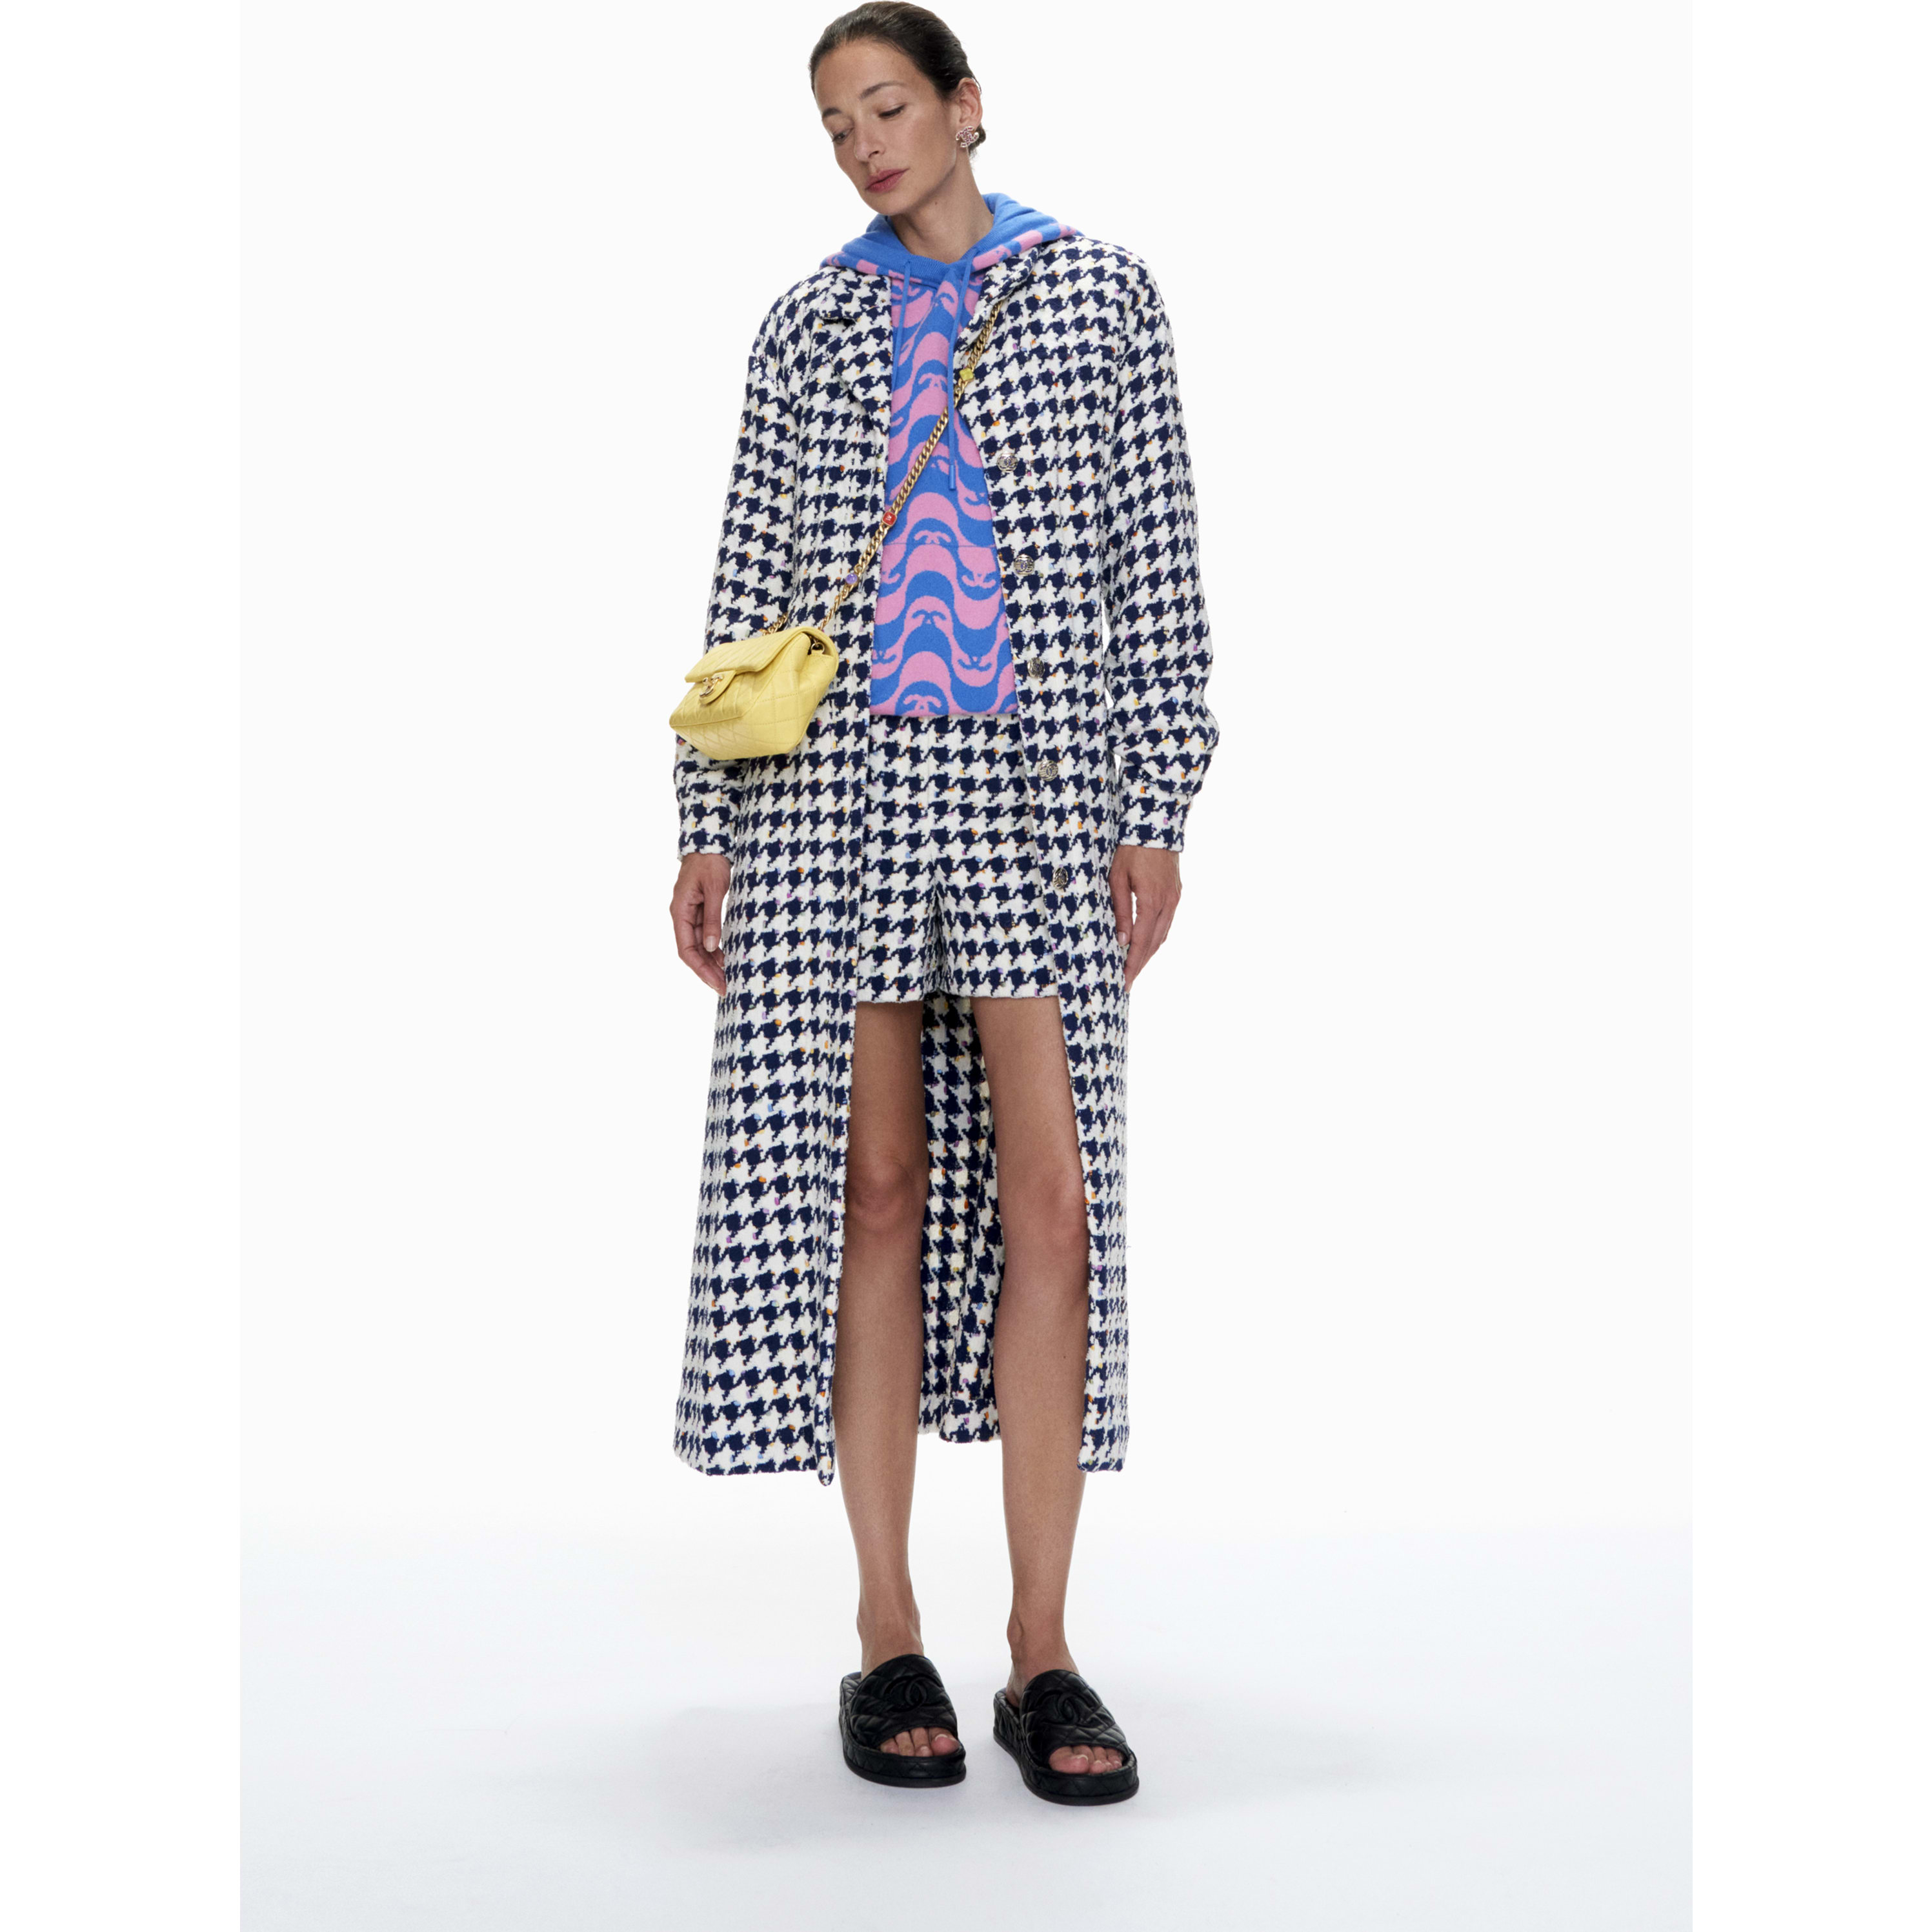 Coat - Ecru, Navy Blue & Multicolour - Tweed - CHANEL - Default view - see standard sized version